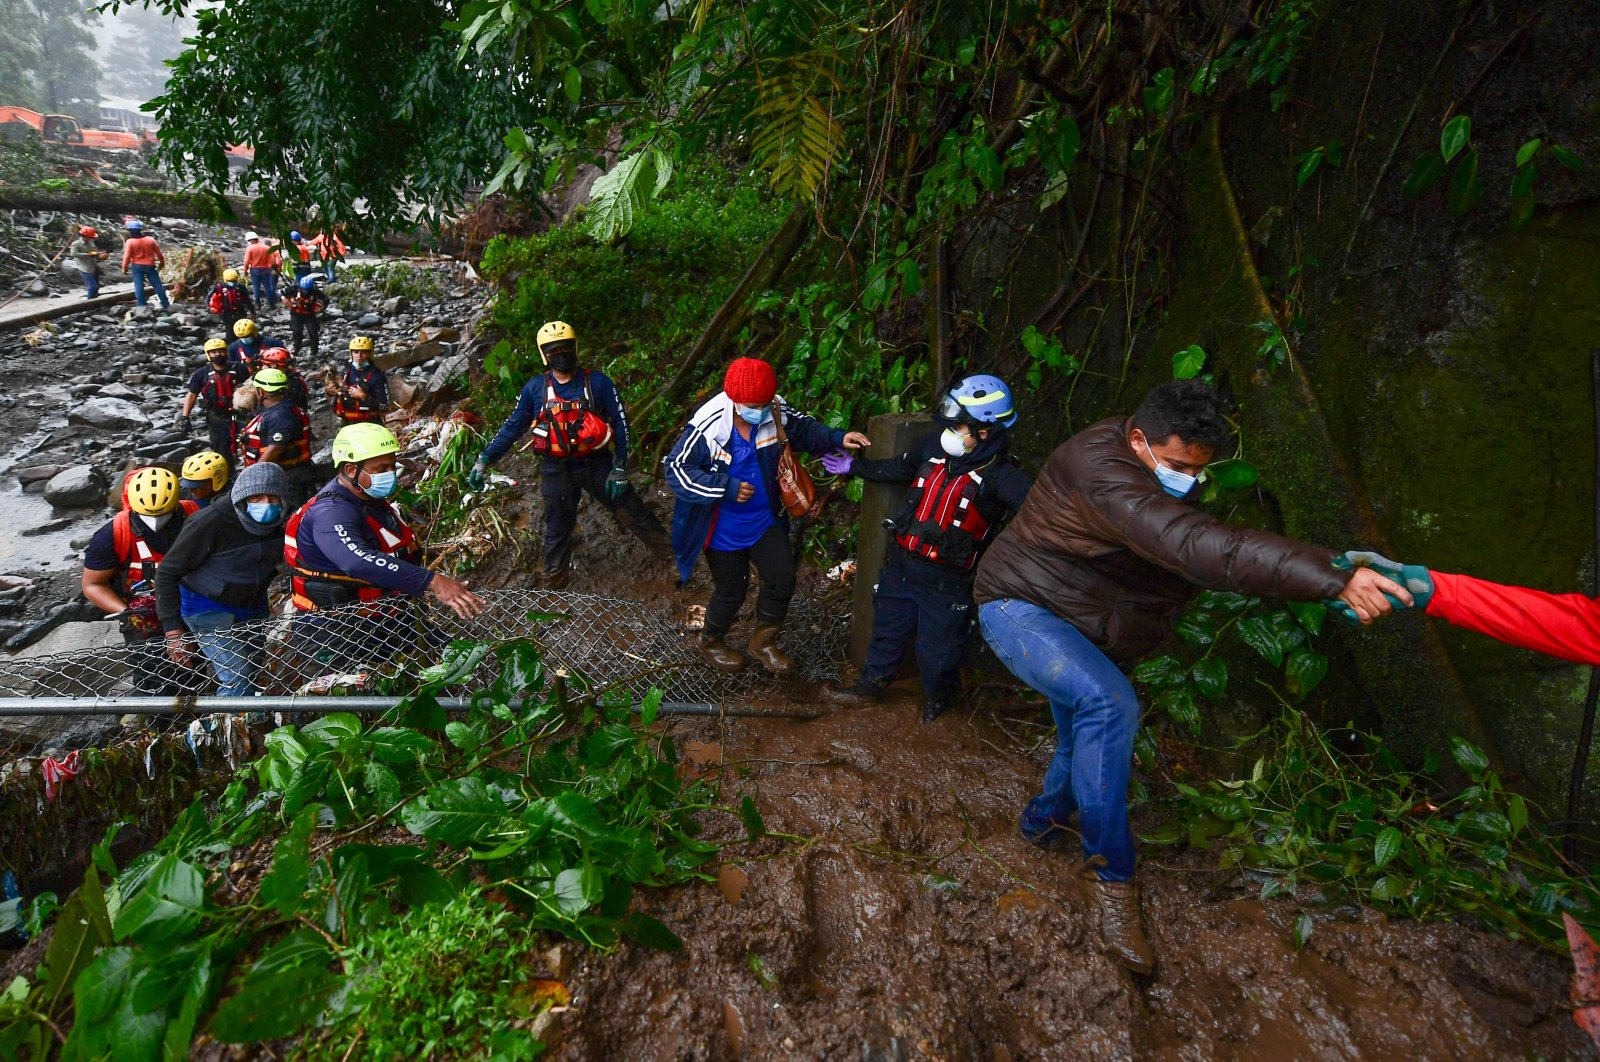 Members of the Red Cross help to evacuate people after the overflow of the Bambito river due to the heavy rains caused by Hurricane Eta, now degraded to a tropical storm, in Bambito, Chiriqui Province, Panama, Nov. 5, 2020. (AFP Photo)